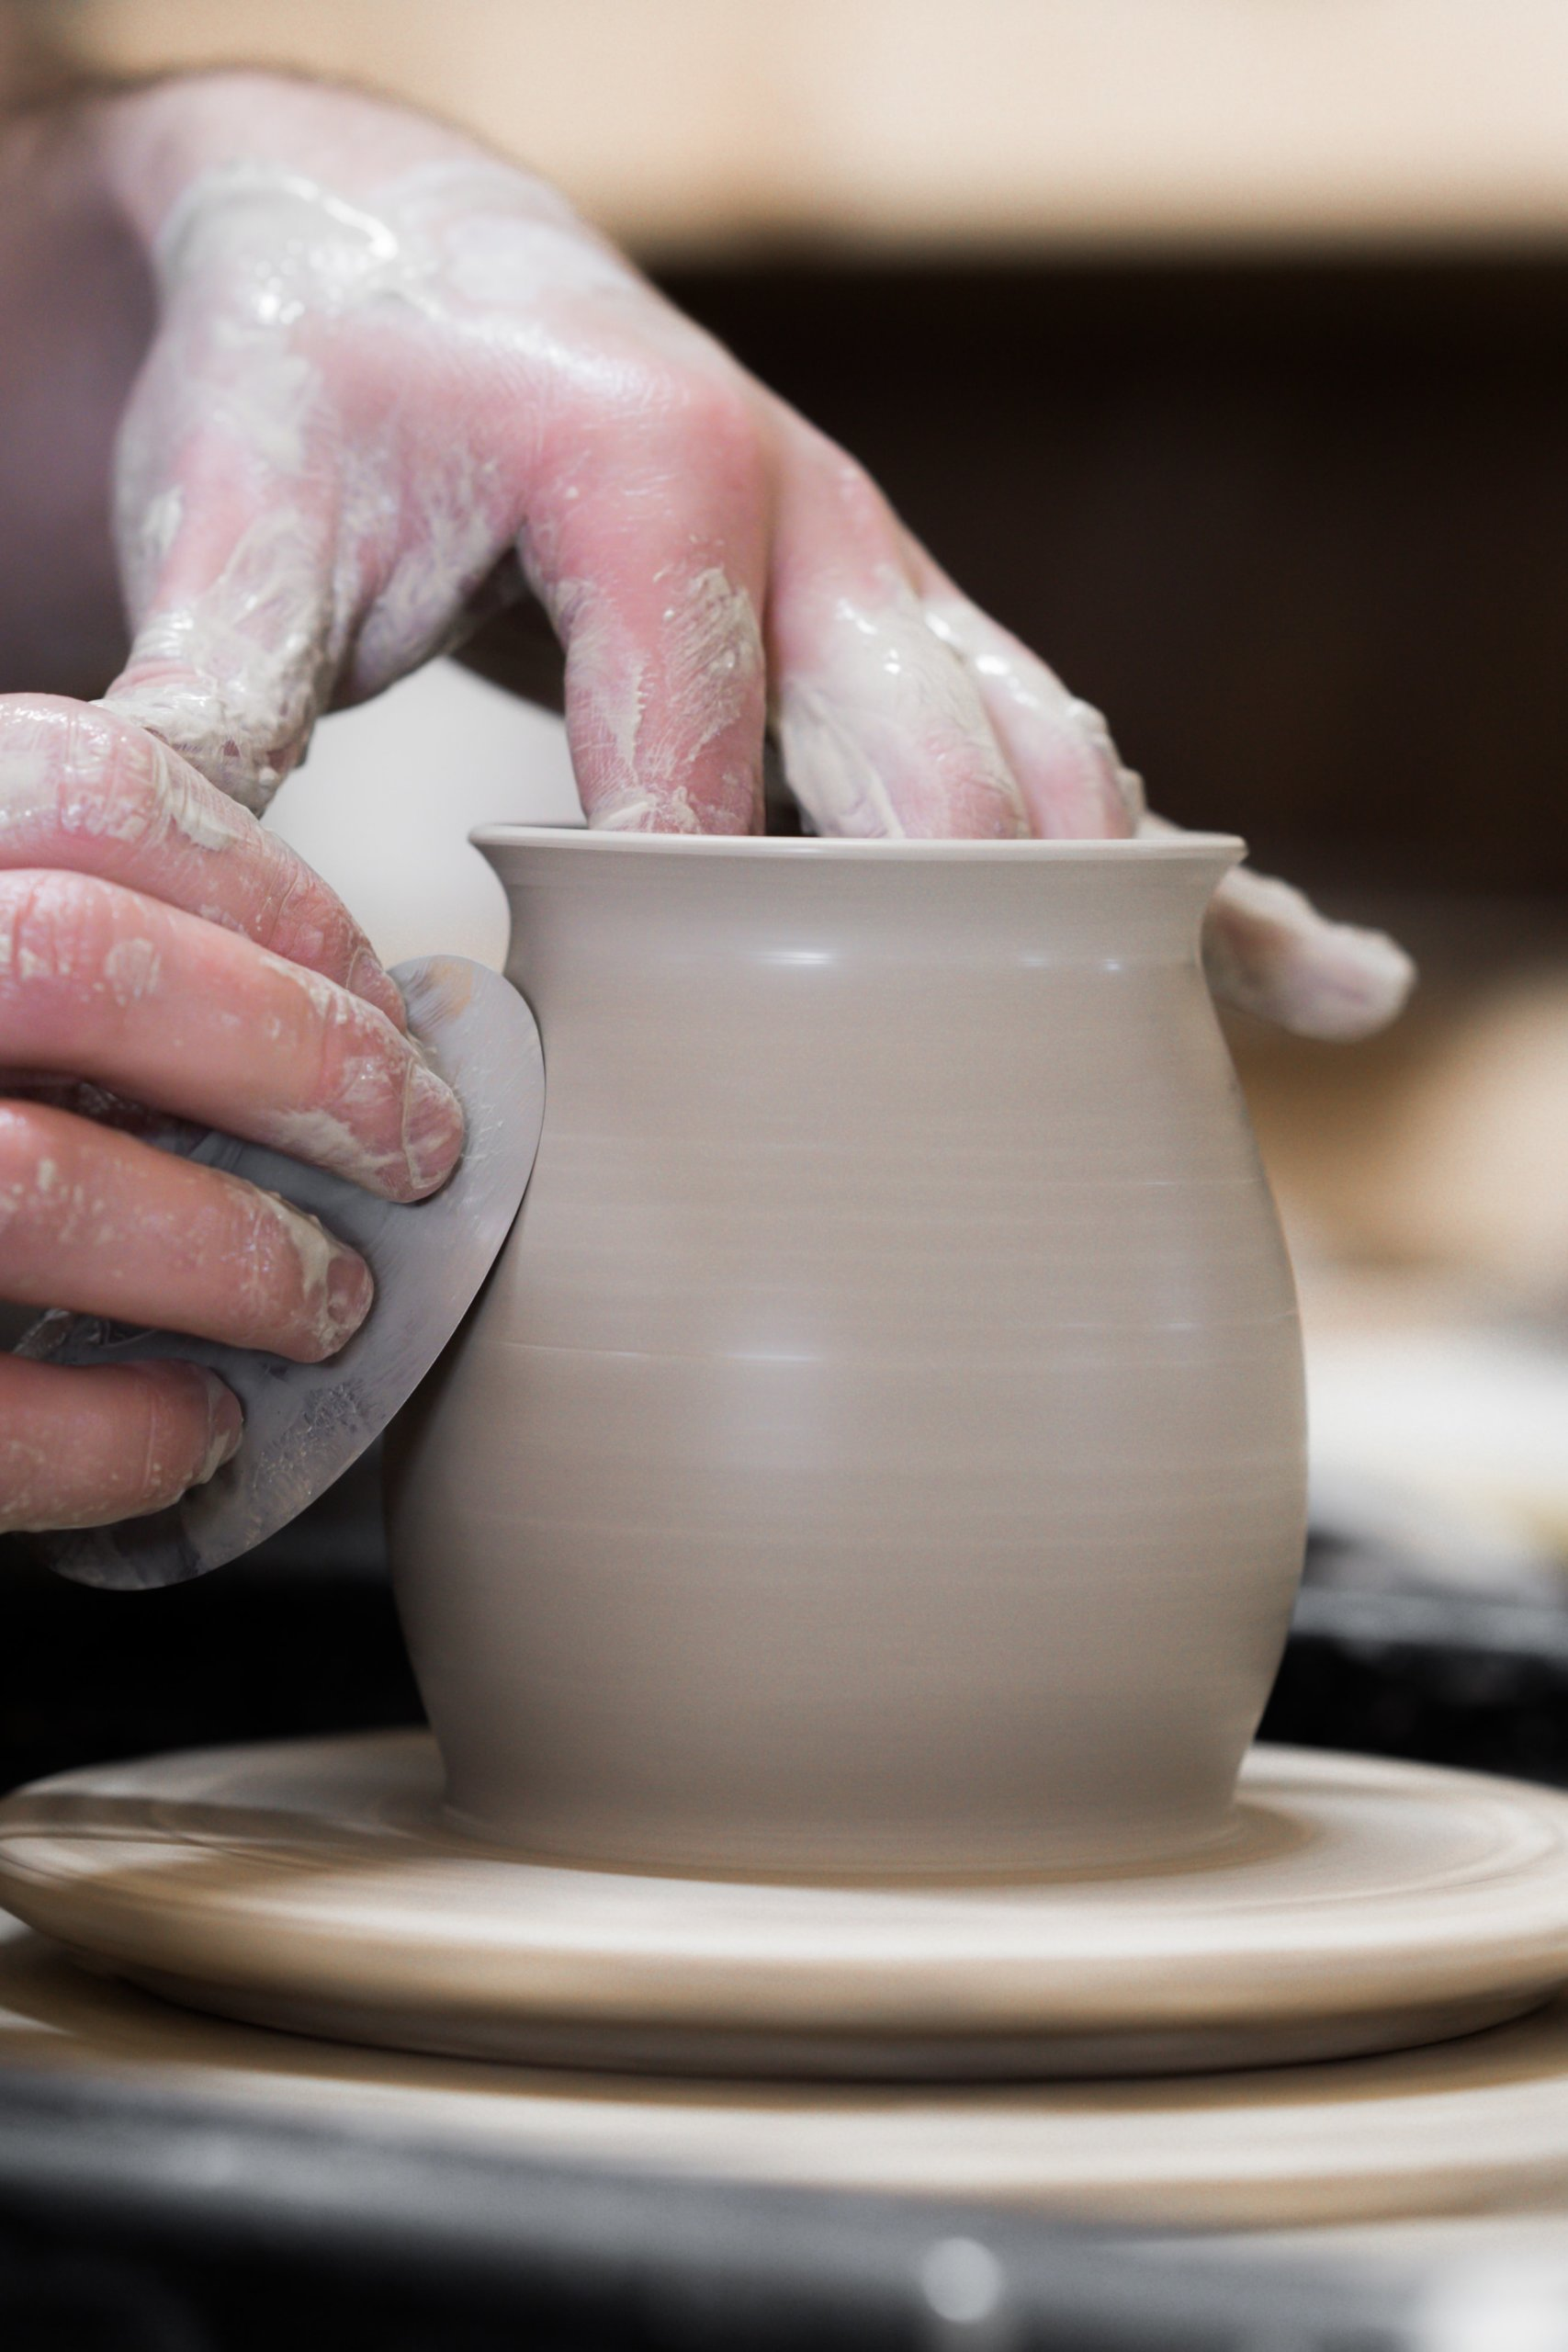 a person working clay into a pot using a potter's wheel